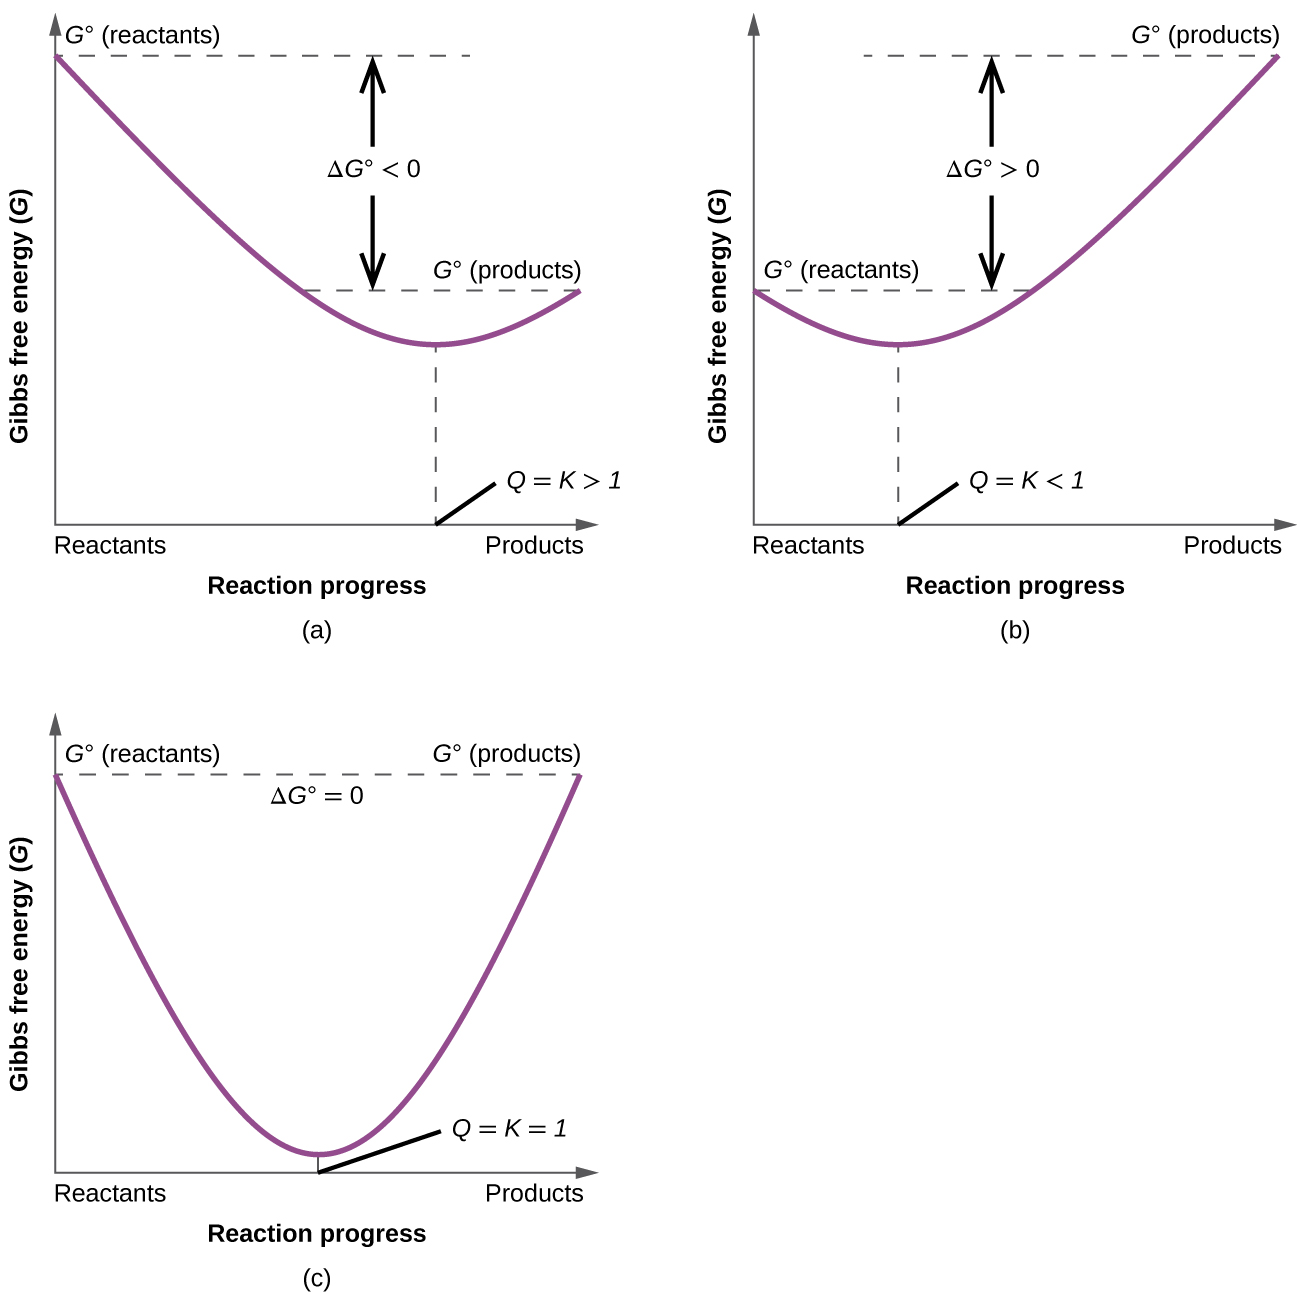 """Three graphs, labeled, """"a,"""" """"b,"""" and """"c"""" are shown where the y-axis is labeled, """"Gibbs free energy ( G ),"""" and, """"G superscript degree sign ( reactants ),"""" while the x-axis is labeled, """"Reaction progress,"""" and """"Reactants,"""" on the left and, """"Products,"""" on the right. In graph a, a line begins at the upper left side and goes steadily down to a point about halfway up the y-axis and two thirds of the way on the x-axis, then rises again to a point labeled, """"G superscript degree sign ( products ),"""" that is slightly higher than halfway up the y-axis. The distance between the beginning and ending points of the graph is labeled as, """"delta G less than 0,"""" while the lowest point on the graph is labeled, """"Q equals K greater than 1."""" In graph b, a line begins at the middle left side and goes steadily down to a point about two fifths up the y-axis and one third of the way on the x-axis, then rises again to a point labeled, """"G superscript degree sign ( products ),"""" that is near the top of the y-axis. The distance between the beginning and ending points of the graph is labeled as, """"delta G greater than 0,"""" while the lowest point on the graph is labeled, """"Q equals K less than 1."""" In graph c, a line begins at the upper left side and goes steadily down to a point near the bottom of the y-axis and half way on the x-axis, then rises again to a point labeled, """"G superscript degree sign ( products ),"""" that is equal to the starting point on the y-axis which is labeled, """"G superscript degree sign ( reactants )."""" The lowest point on the graph is labeled, """"Q equals K equals 1."""" At the top of the graph is the label, """"Delta G superscript degree sign equals 0."""""""